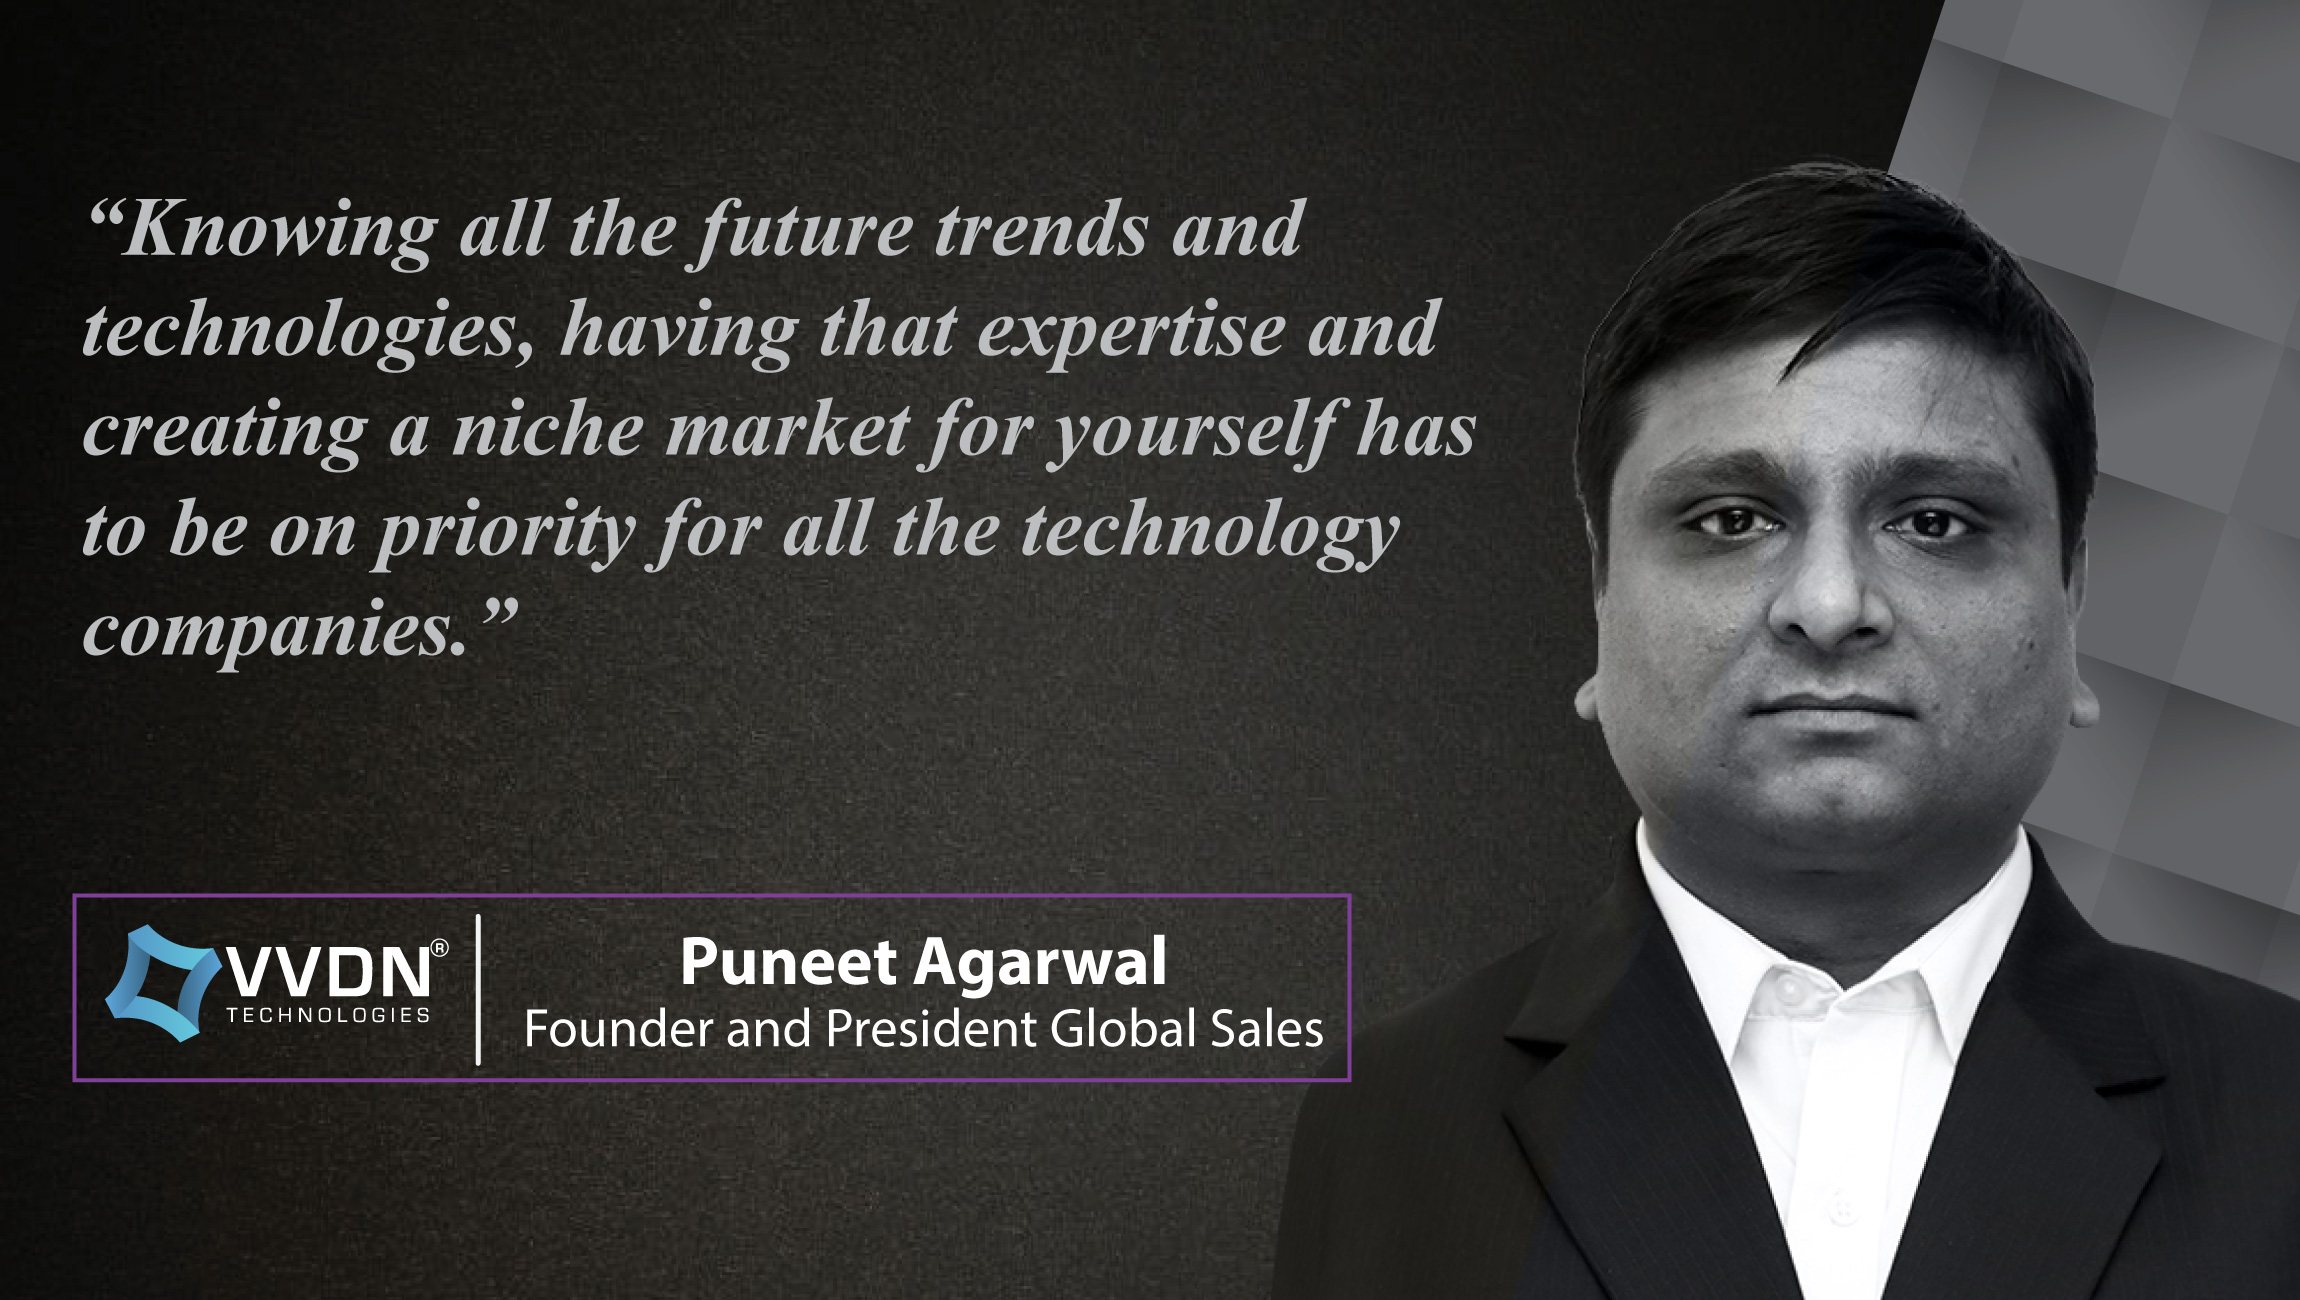 AiThority Interview Series with Puneet Agarwal, Founder and President at VVDN Technologies_cue card